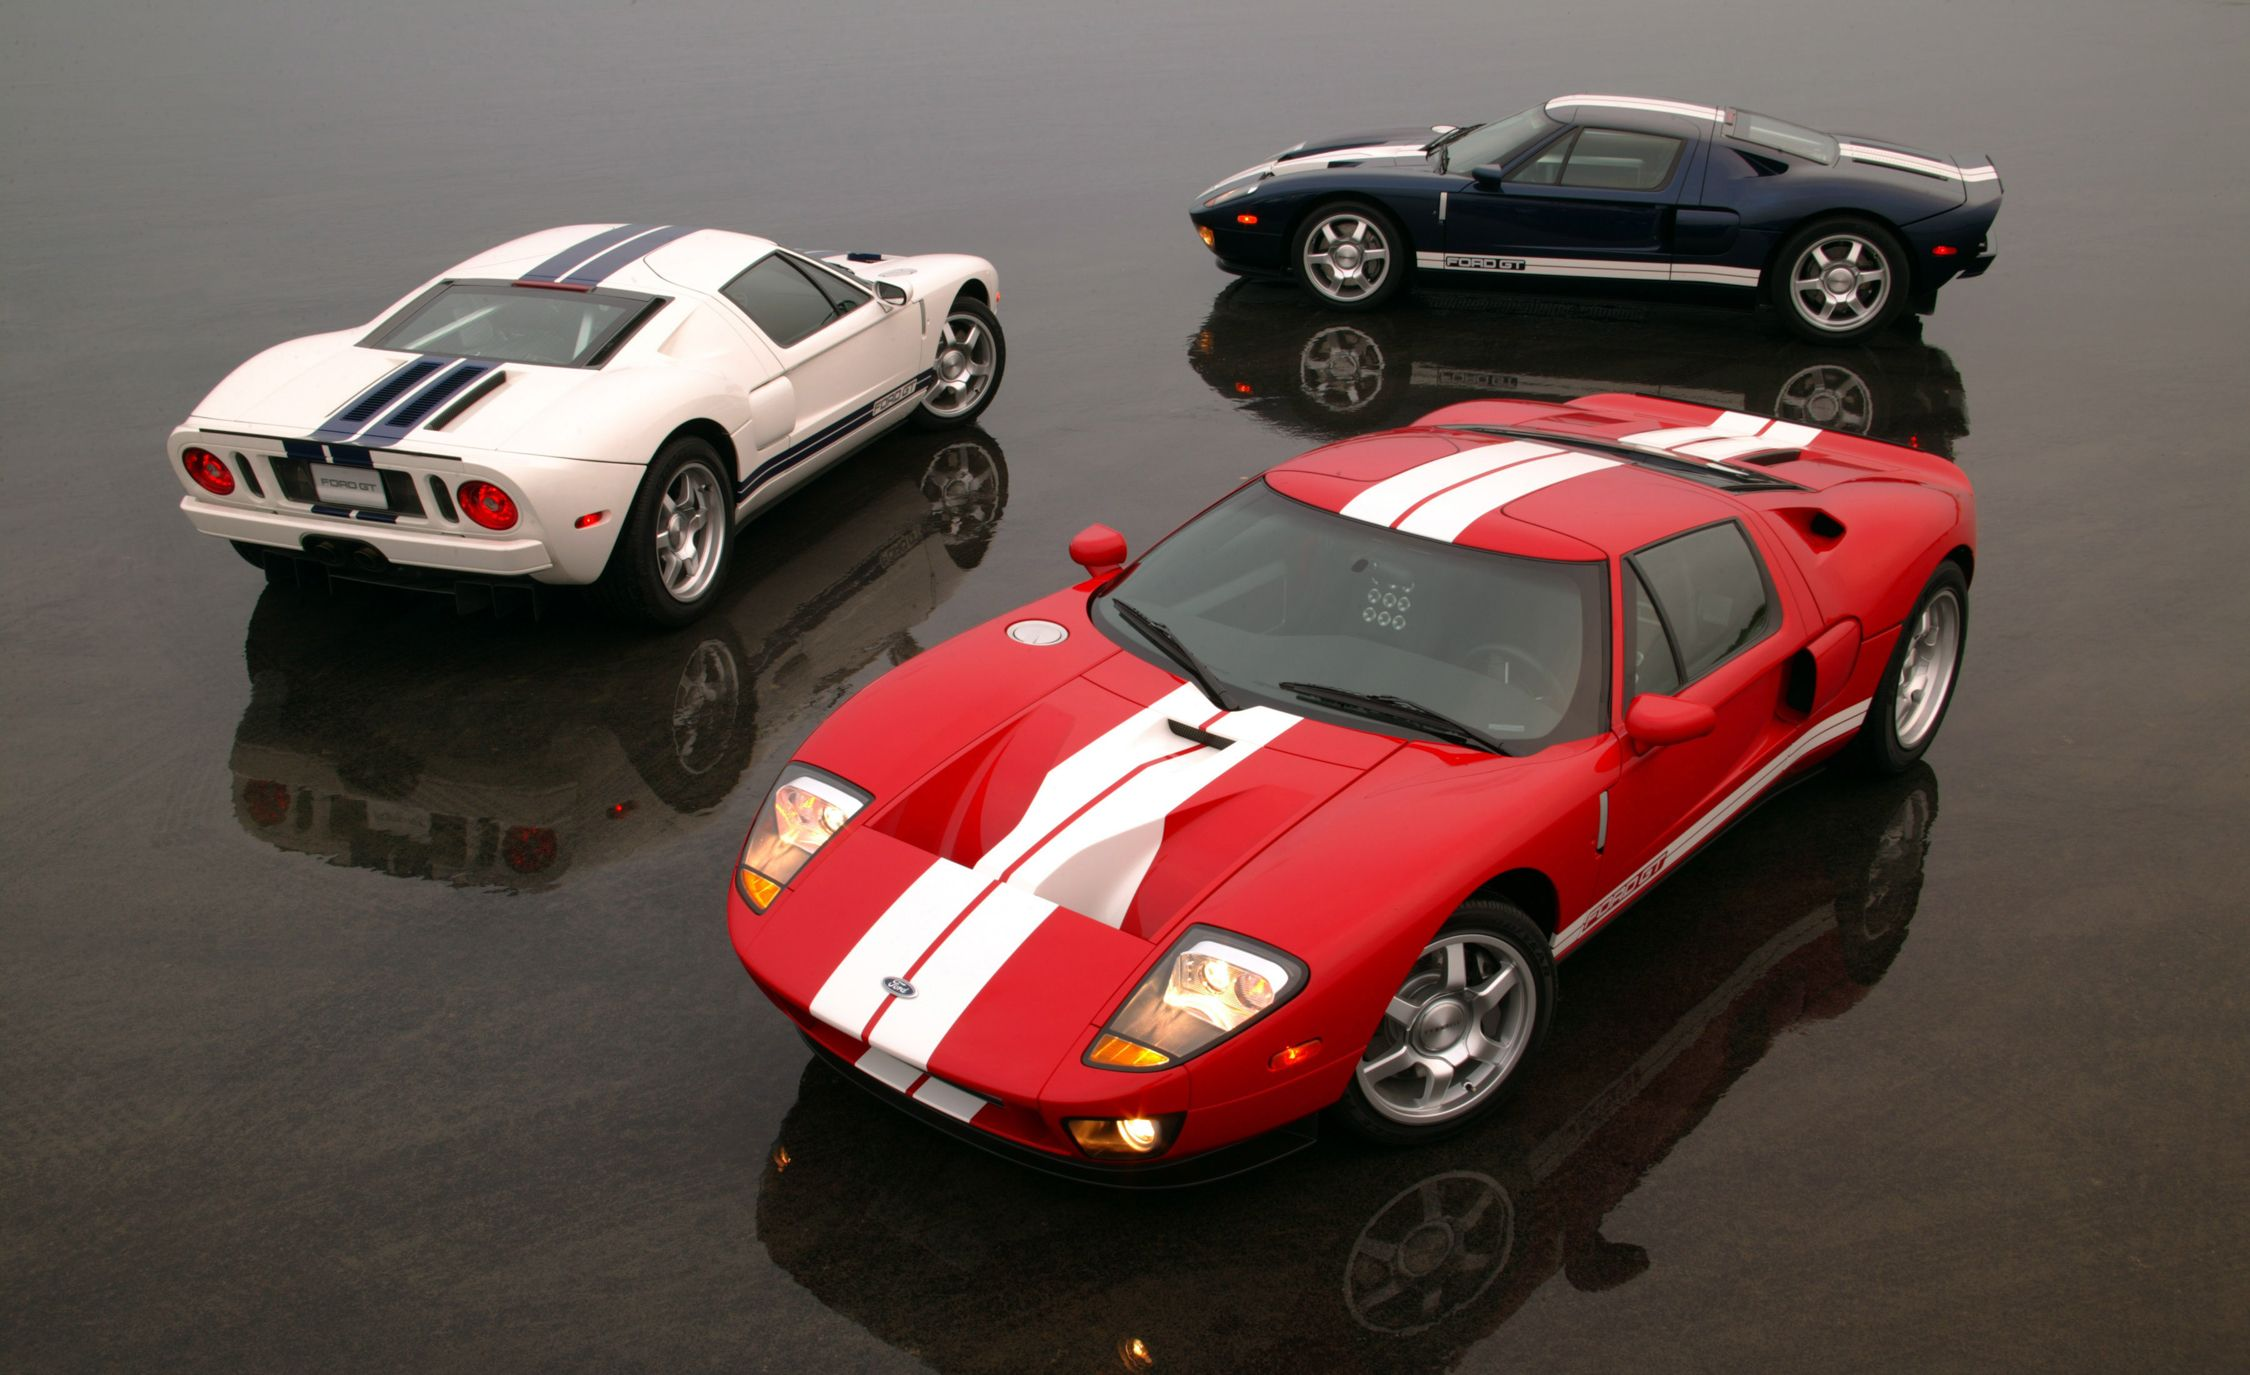 Ford For All These Are The 20 Best Ford Cars Of All Time Ford Gt Car Ford Sports Car